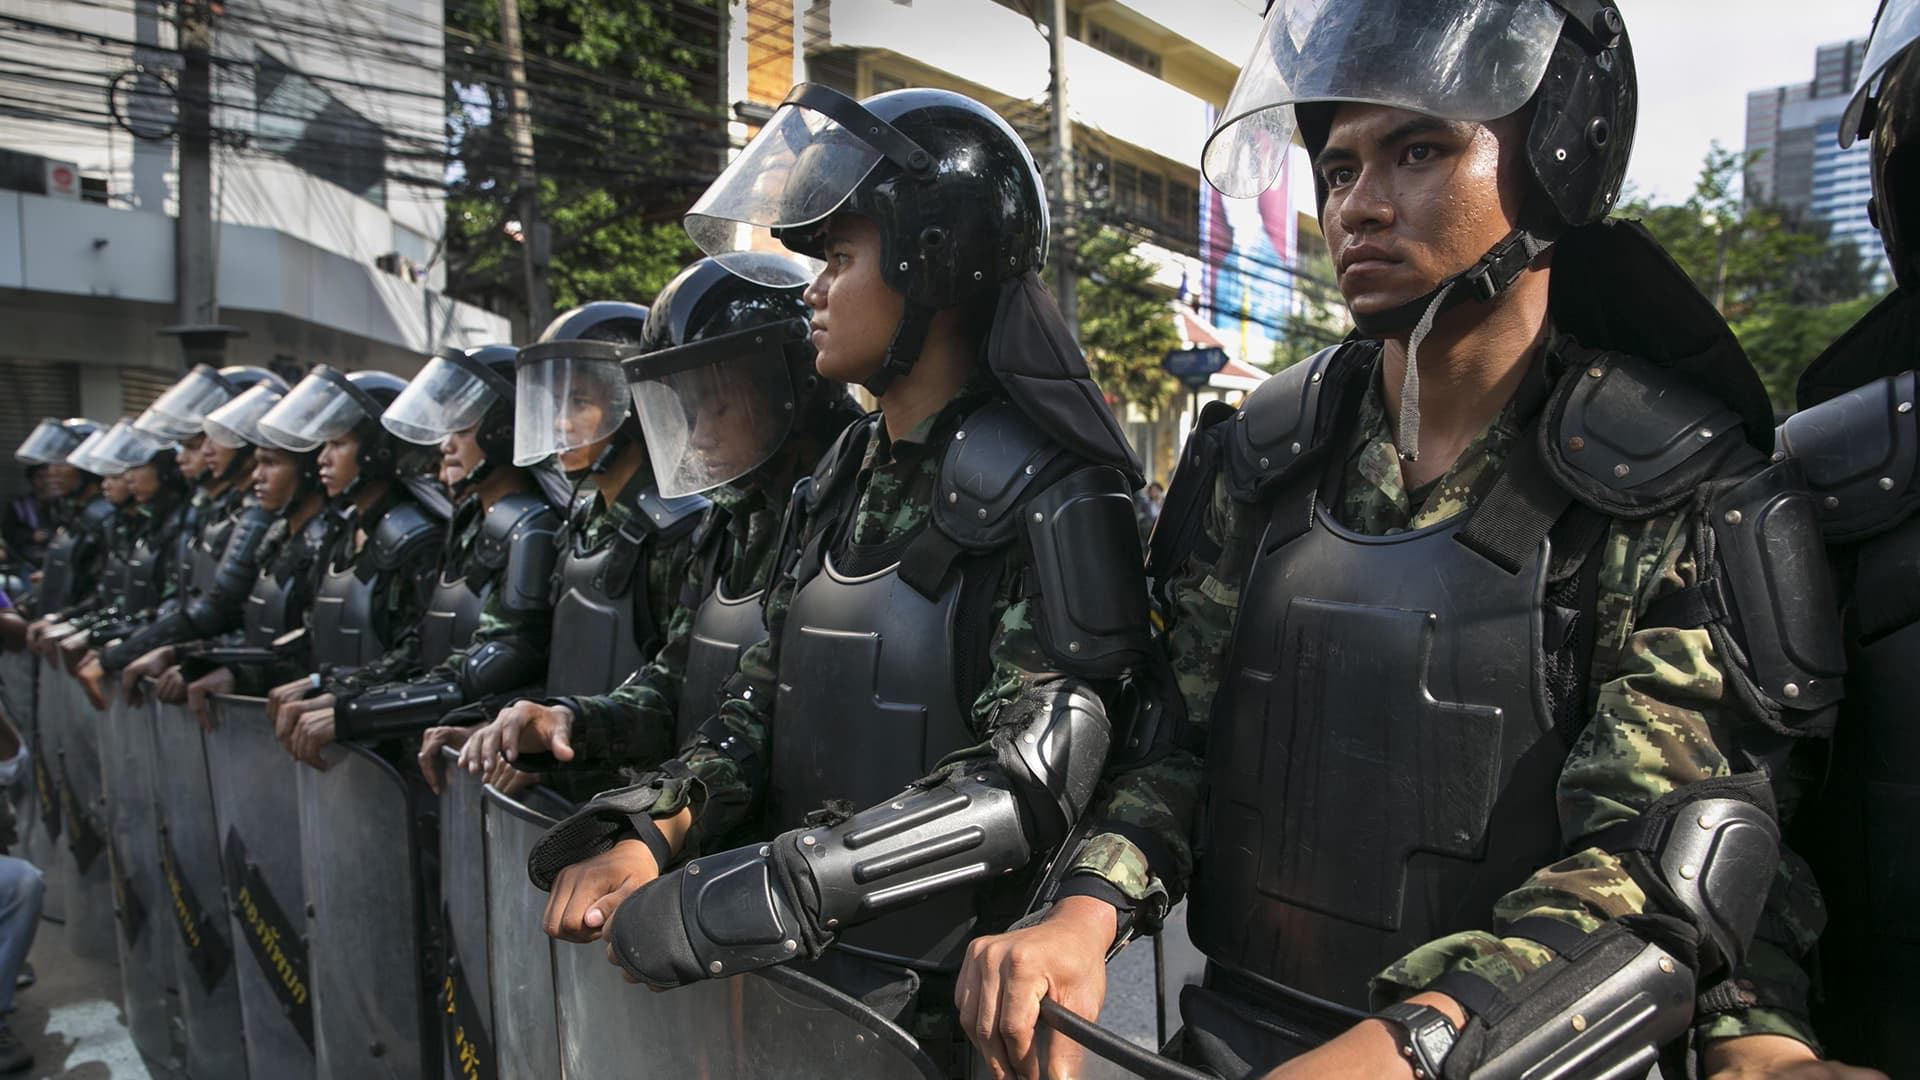 Why does Thailand have so many coups?